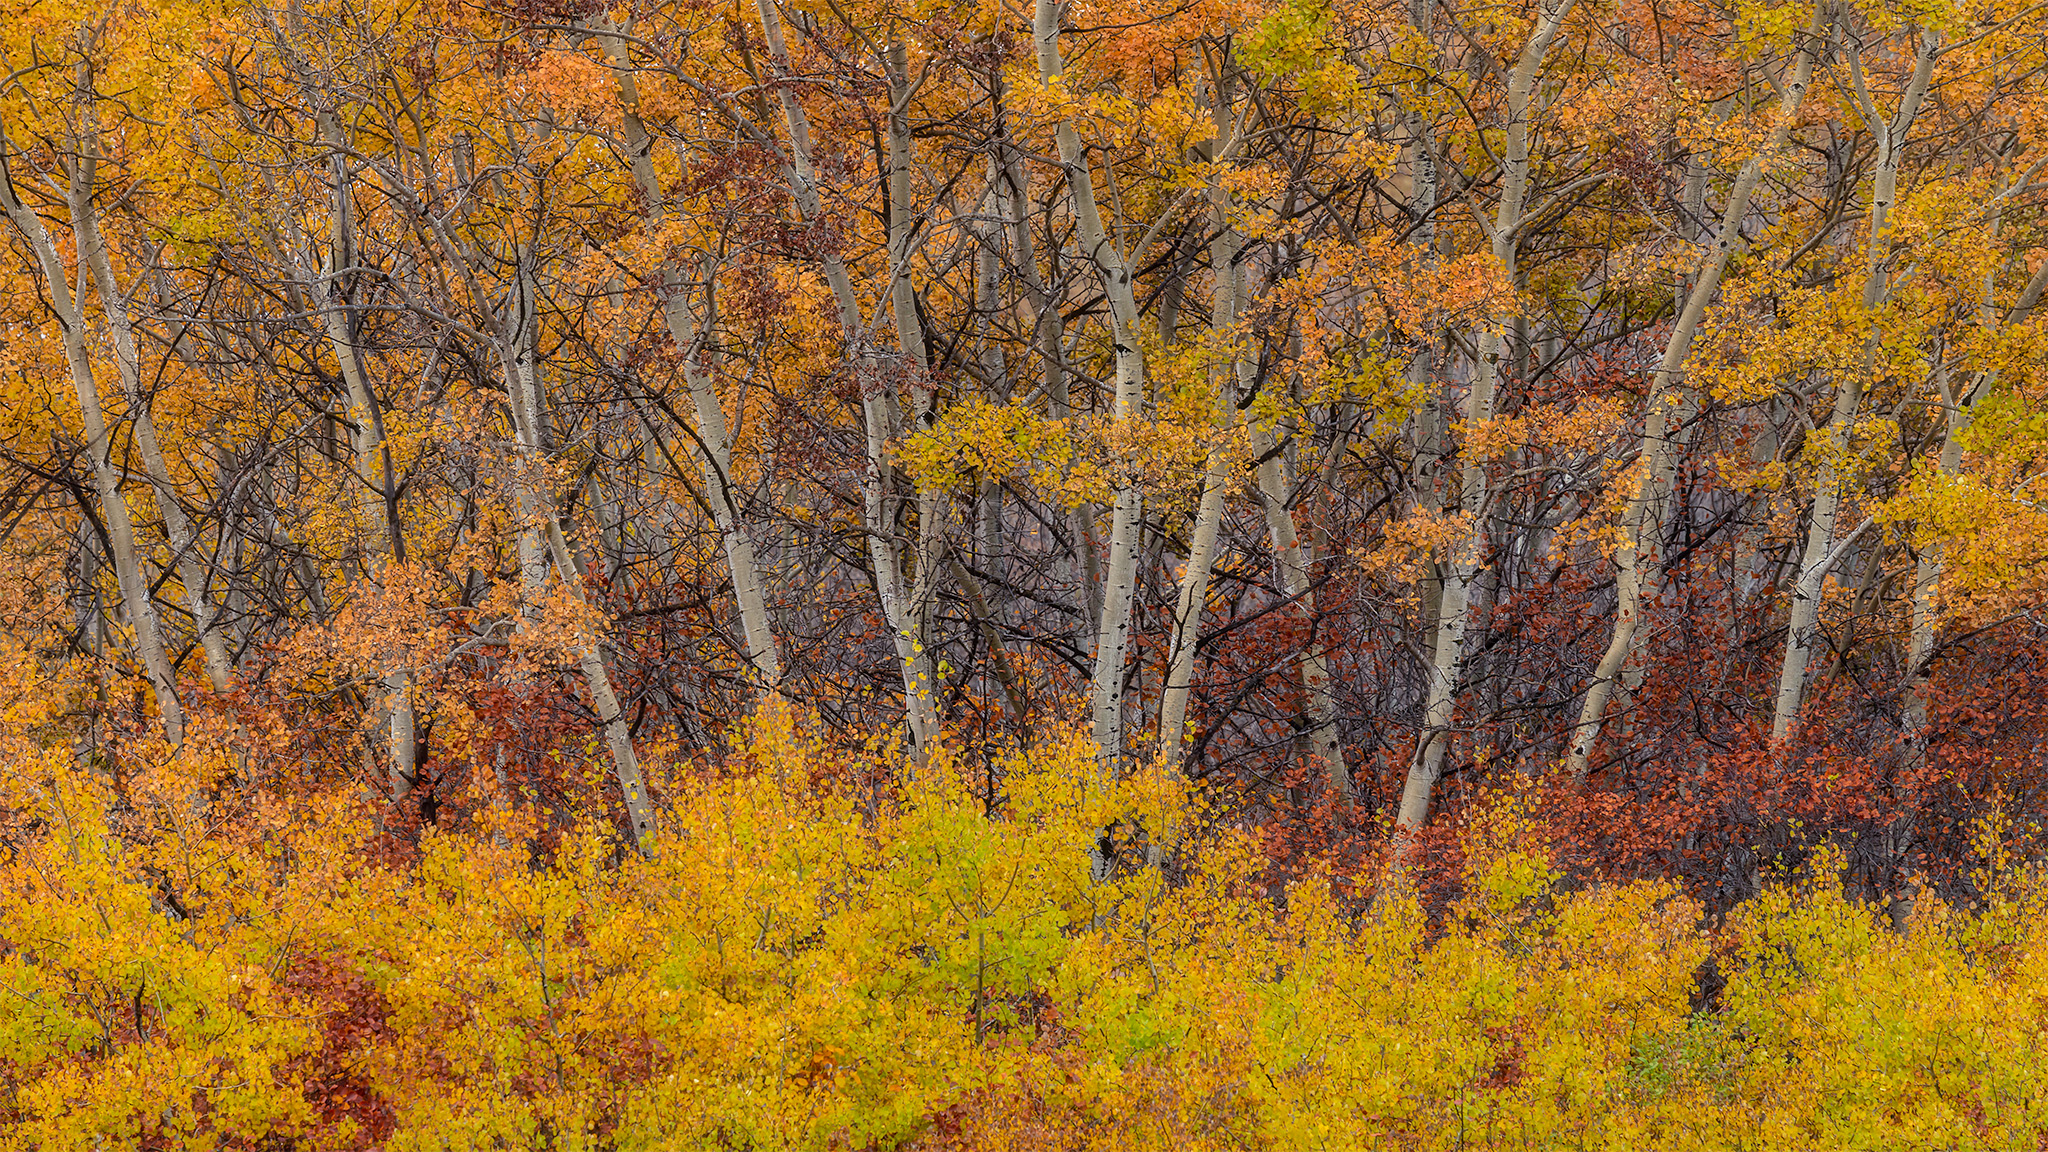 An intimate landscape photograph of fall foliage and aspen trees in Saskatchewan